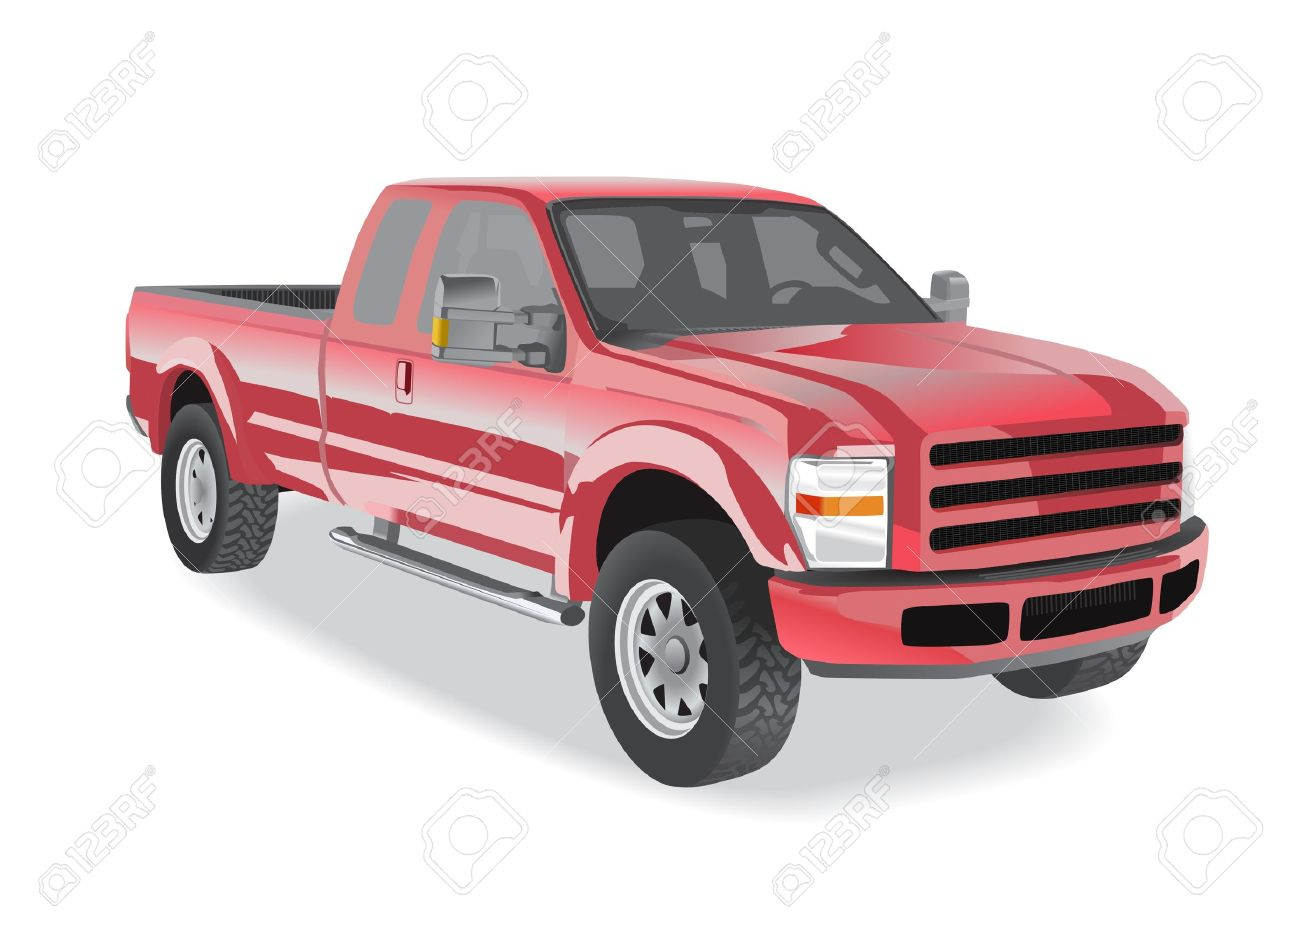 Pick-up truck red isolated on white background Stock Vector - 12897650